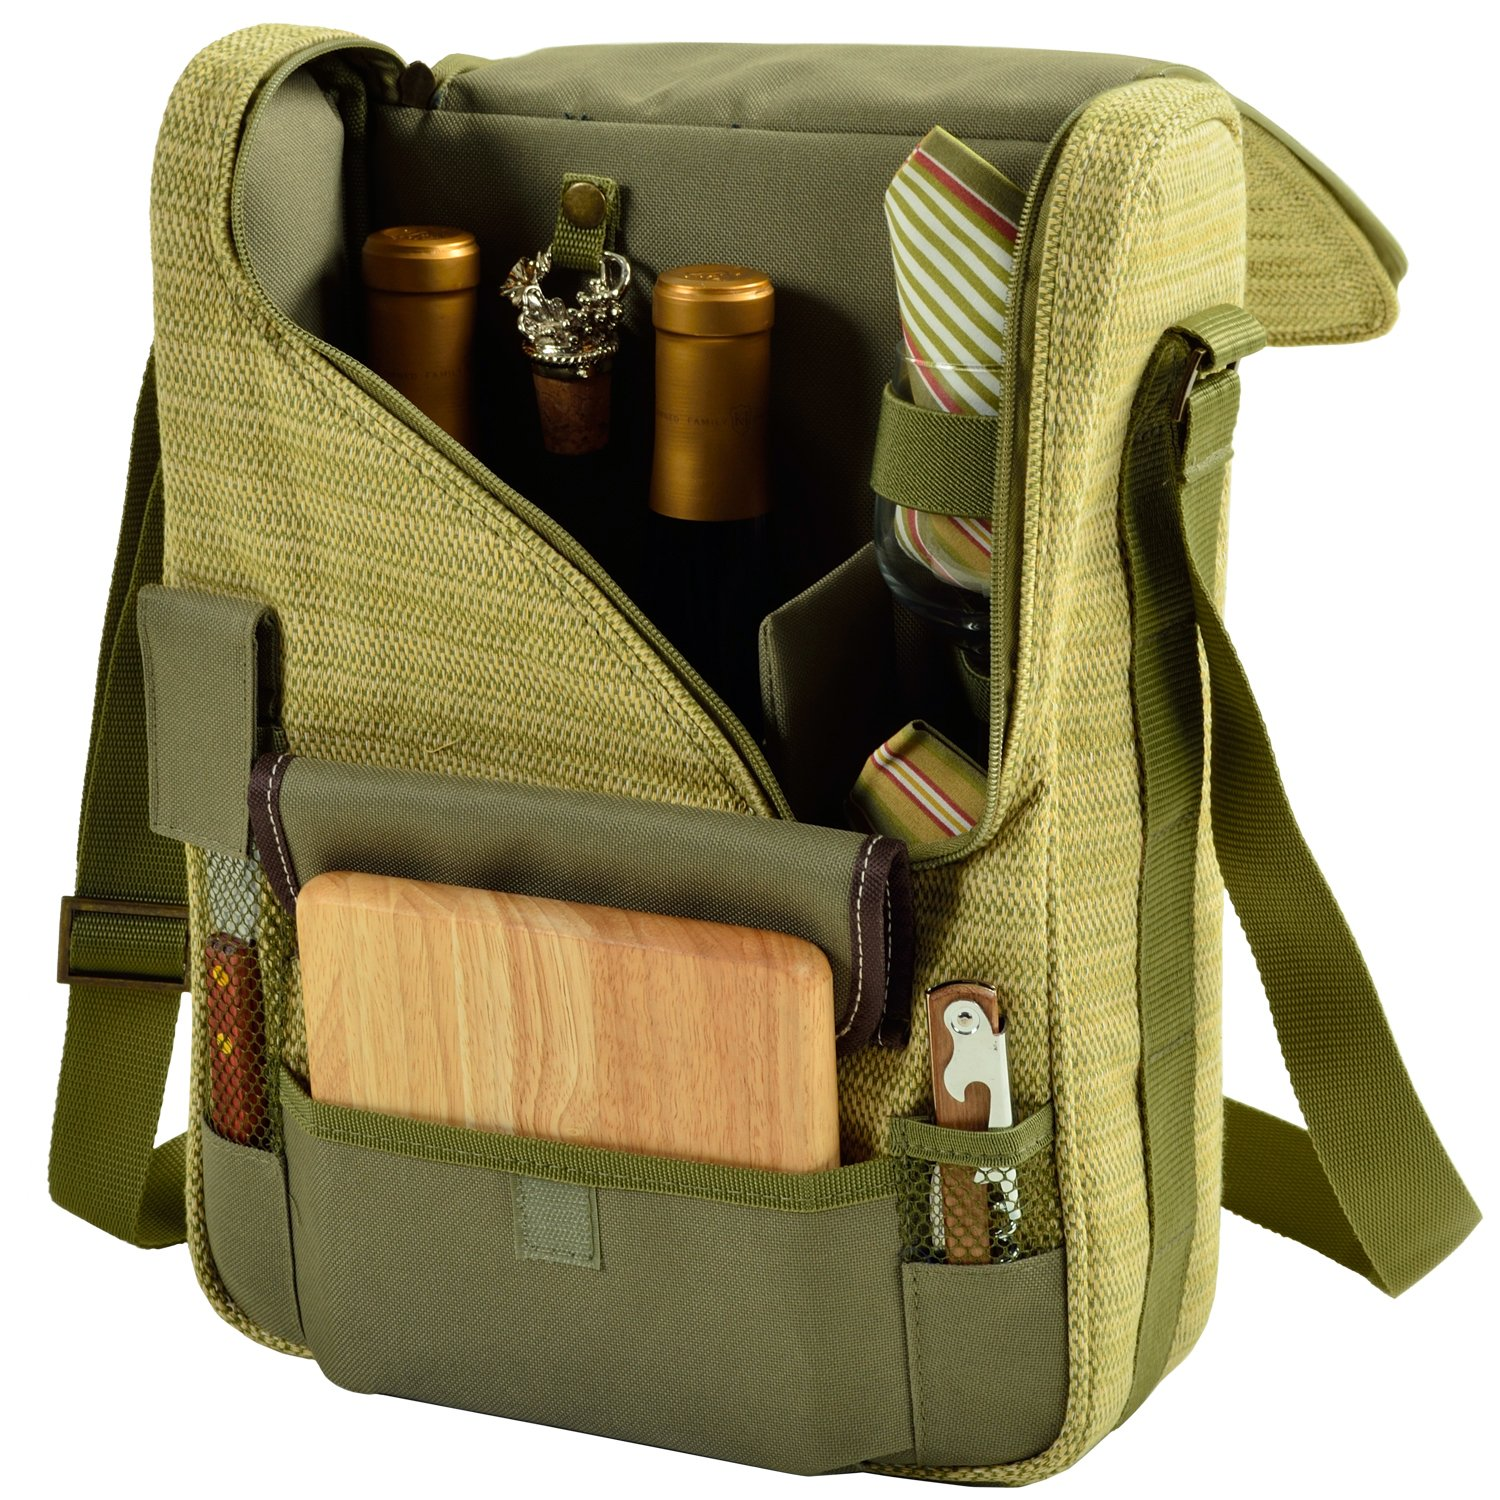 Picnic at Ascot - Wine Carrier Deluxe with Glass Wine Glasses and Accessories for Two, Olive Tweed